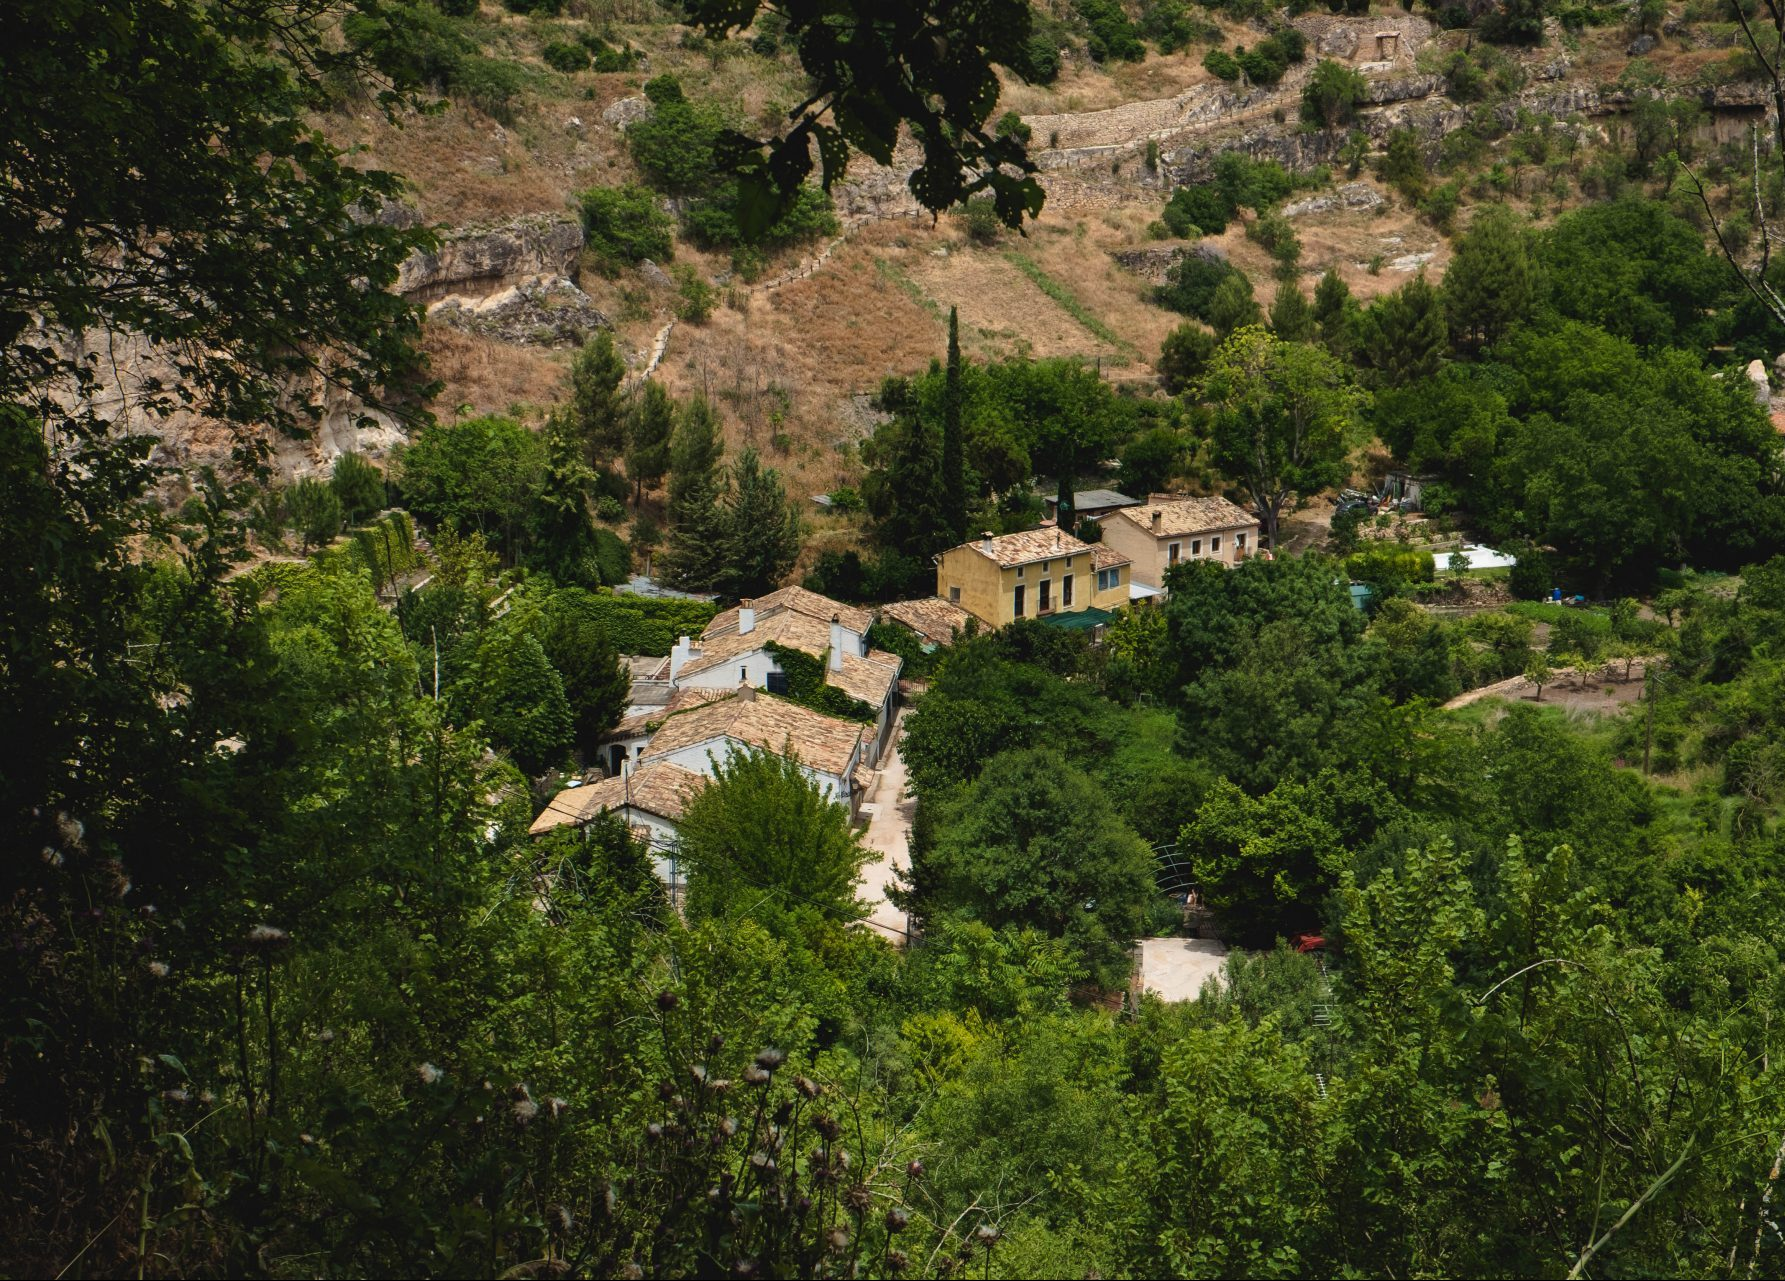 View of the village of Cuenca between trees photo by Jo Kassis